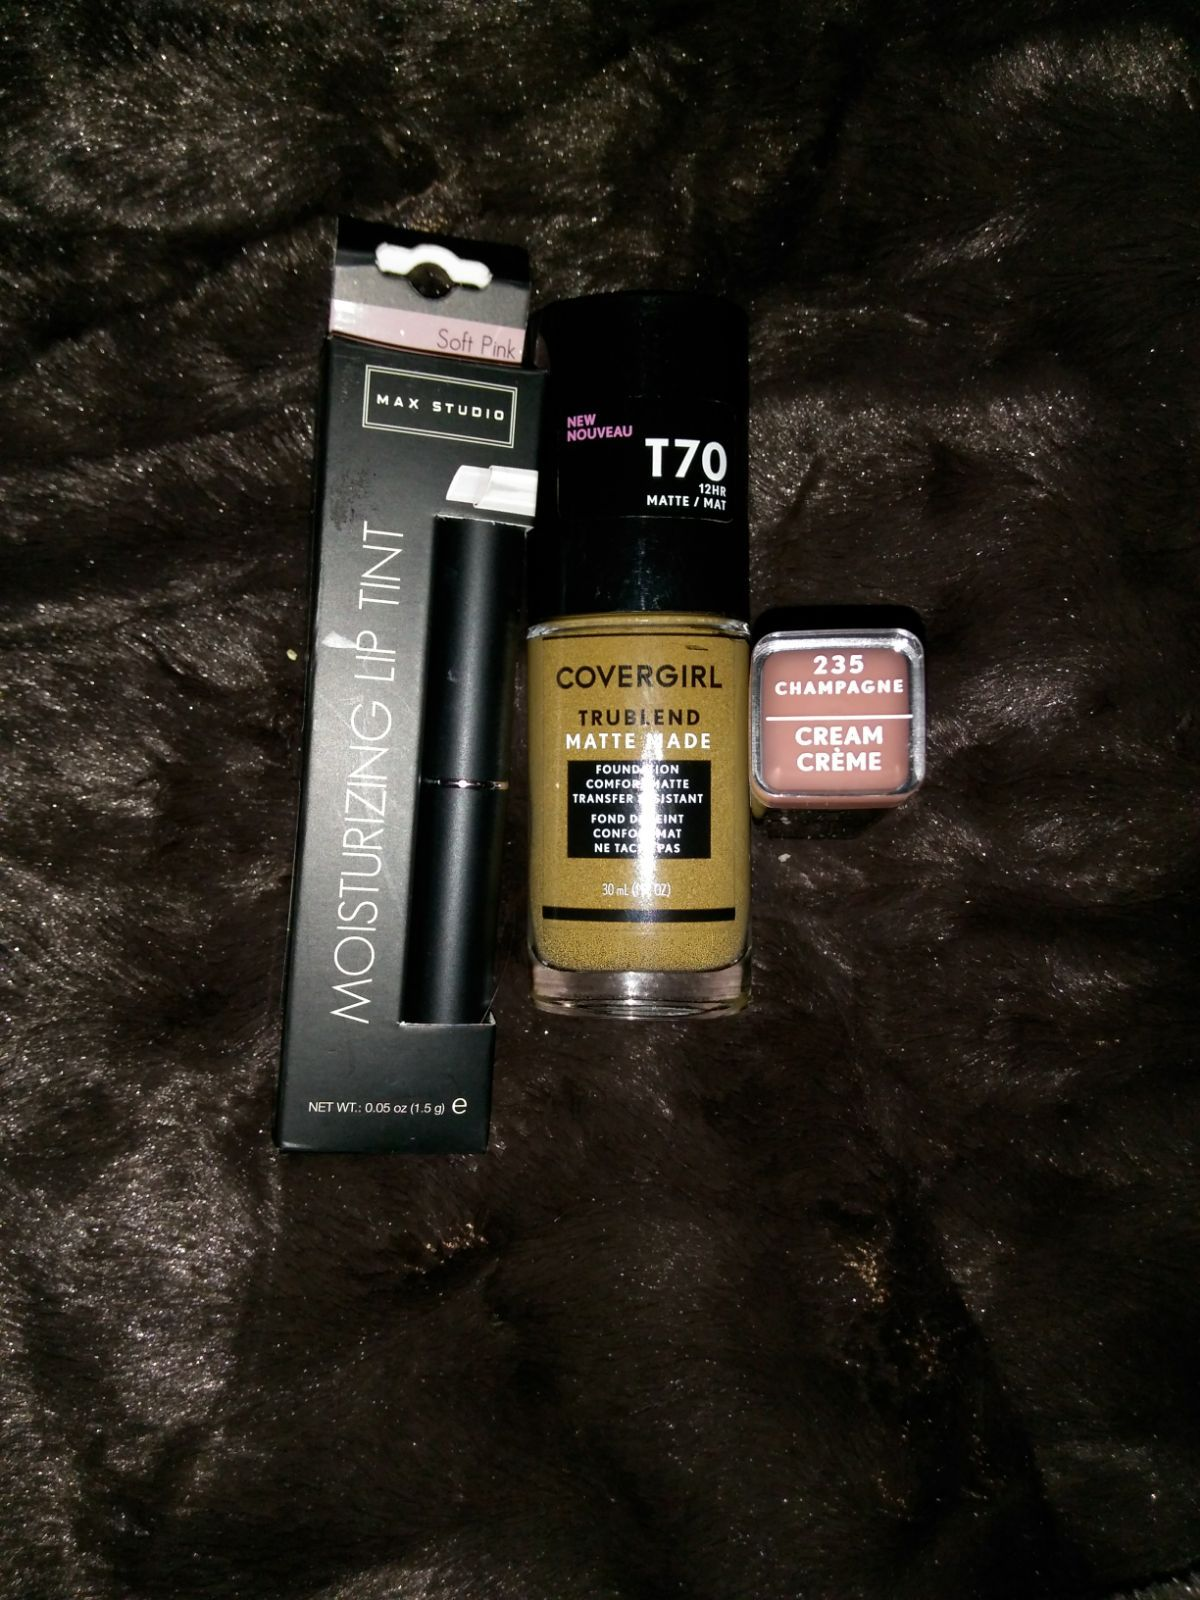 Makeup lot includes Cover Girl Trublend Matte Finish